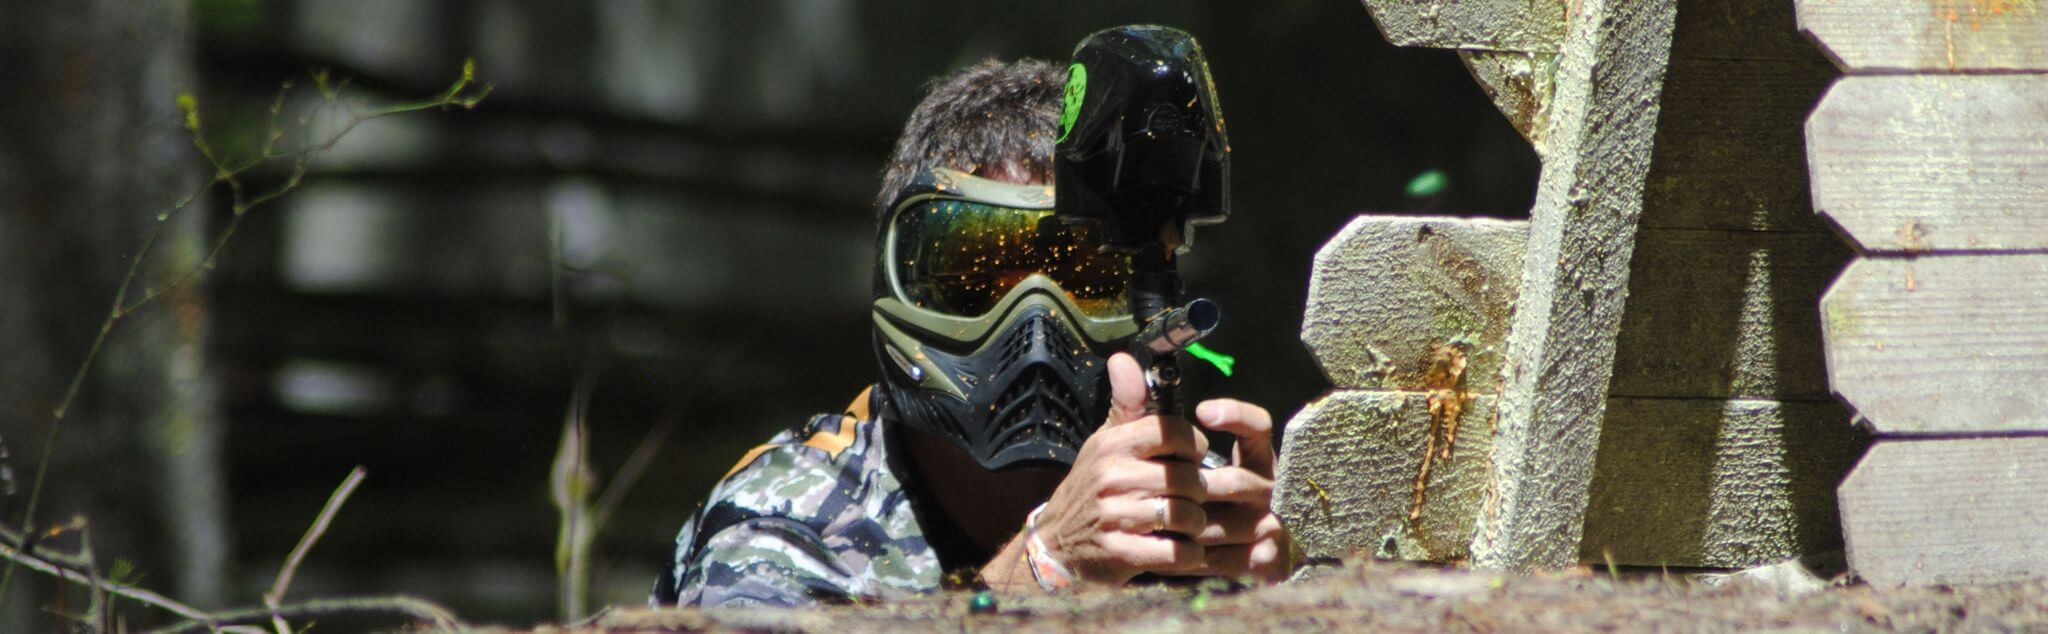 Paintball in Olvera